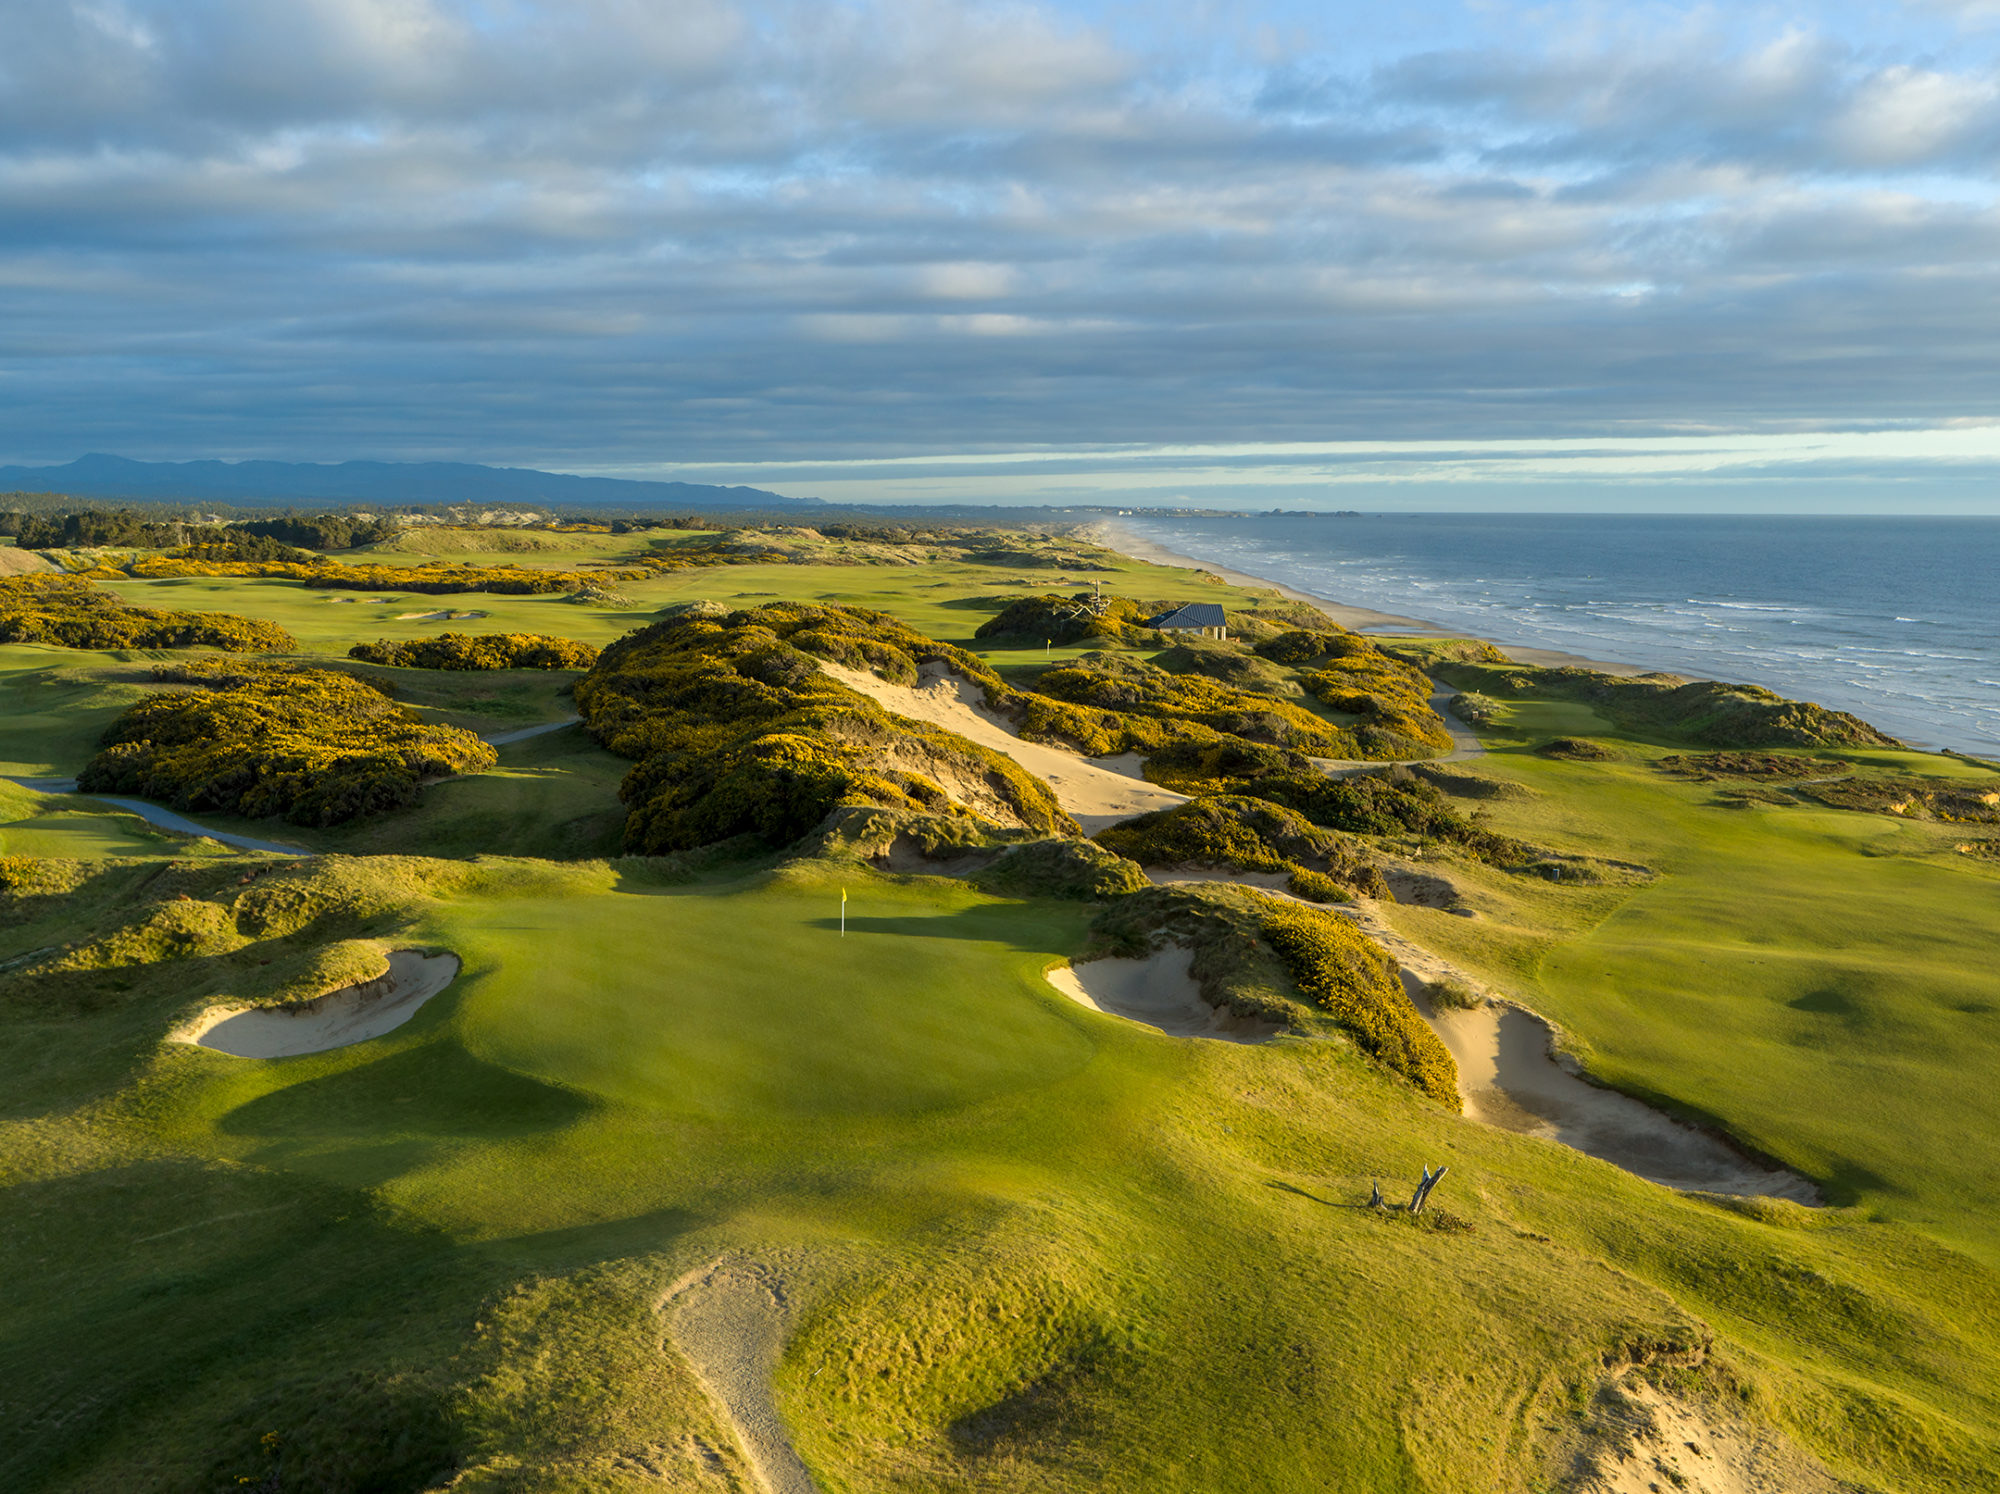 Late afternoon light on the short par 3 14th hole of Pacific Dunes.  A wonderful Tom Doak design at Bandon Dunes Golf Resort in Oregon and one of the top golf destinations in the world.  Beautiful Bandon Dunes photography by Evan Schiller